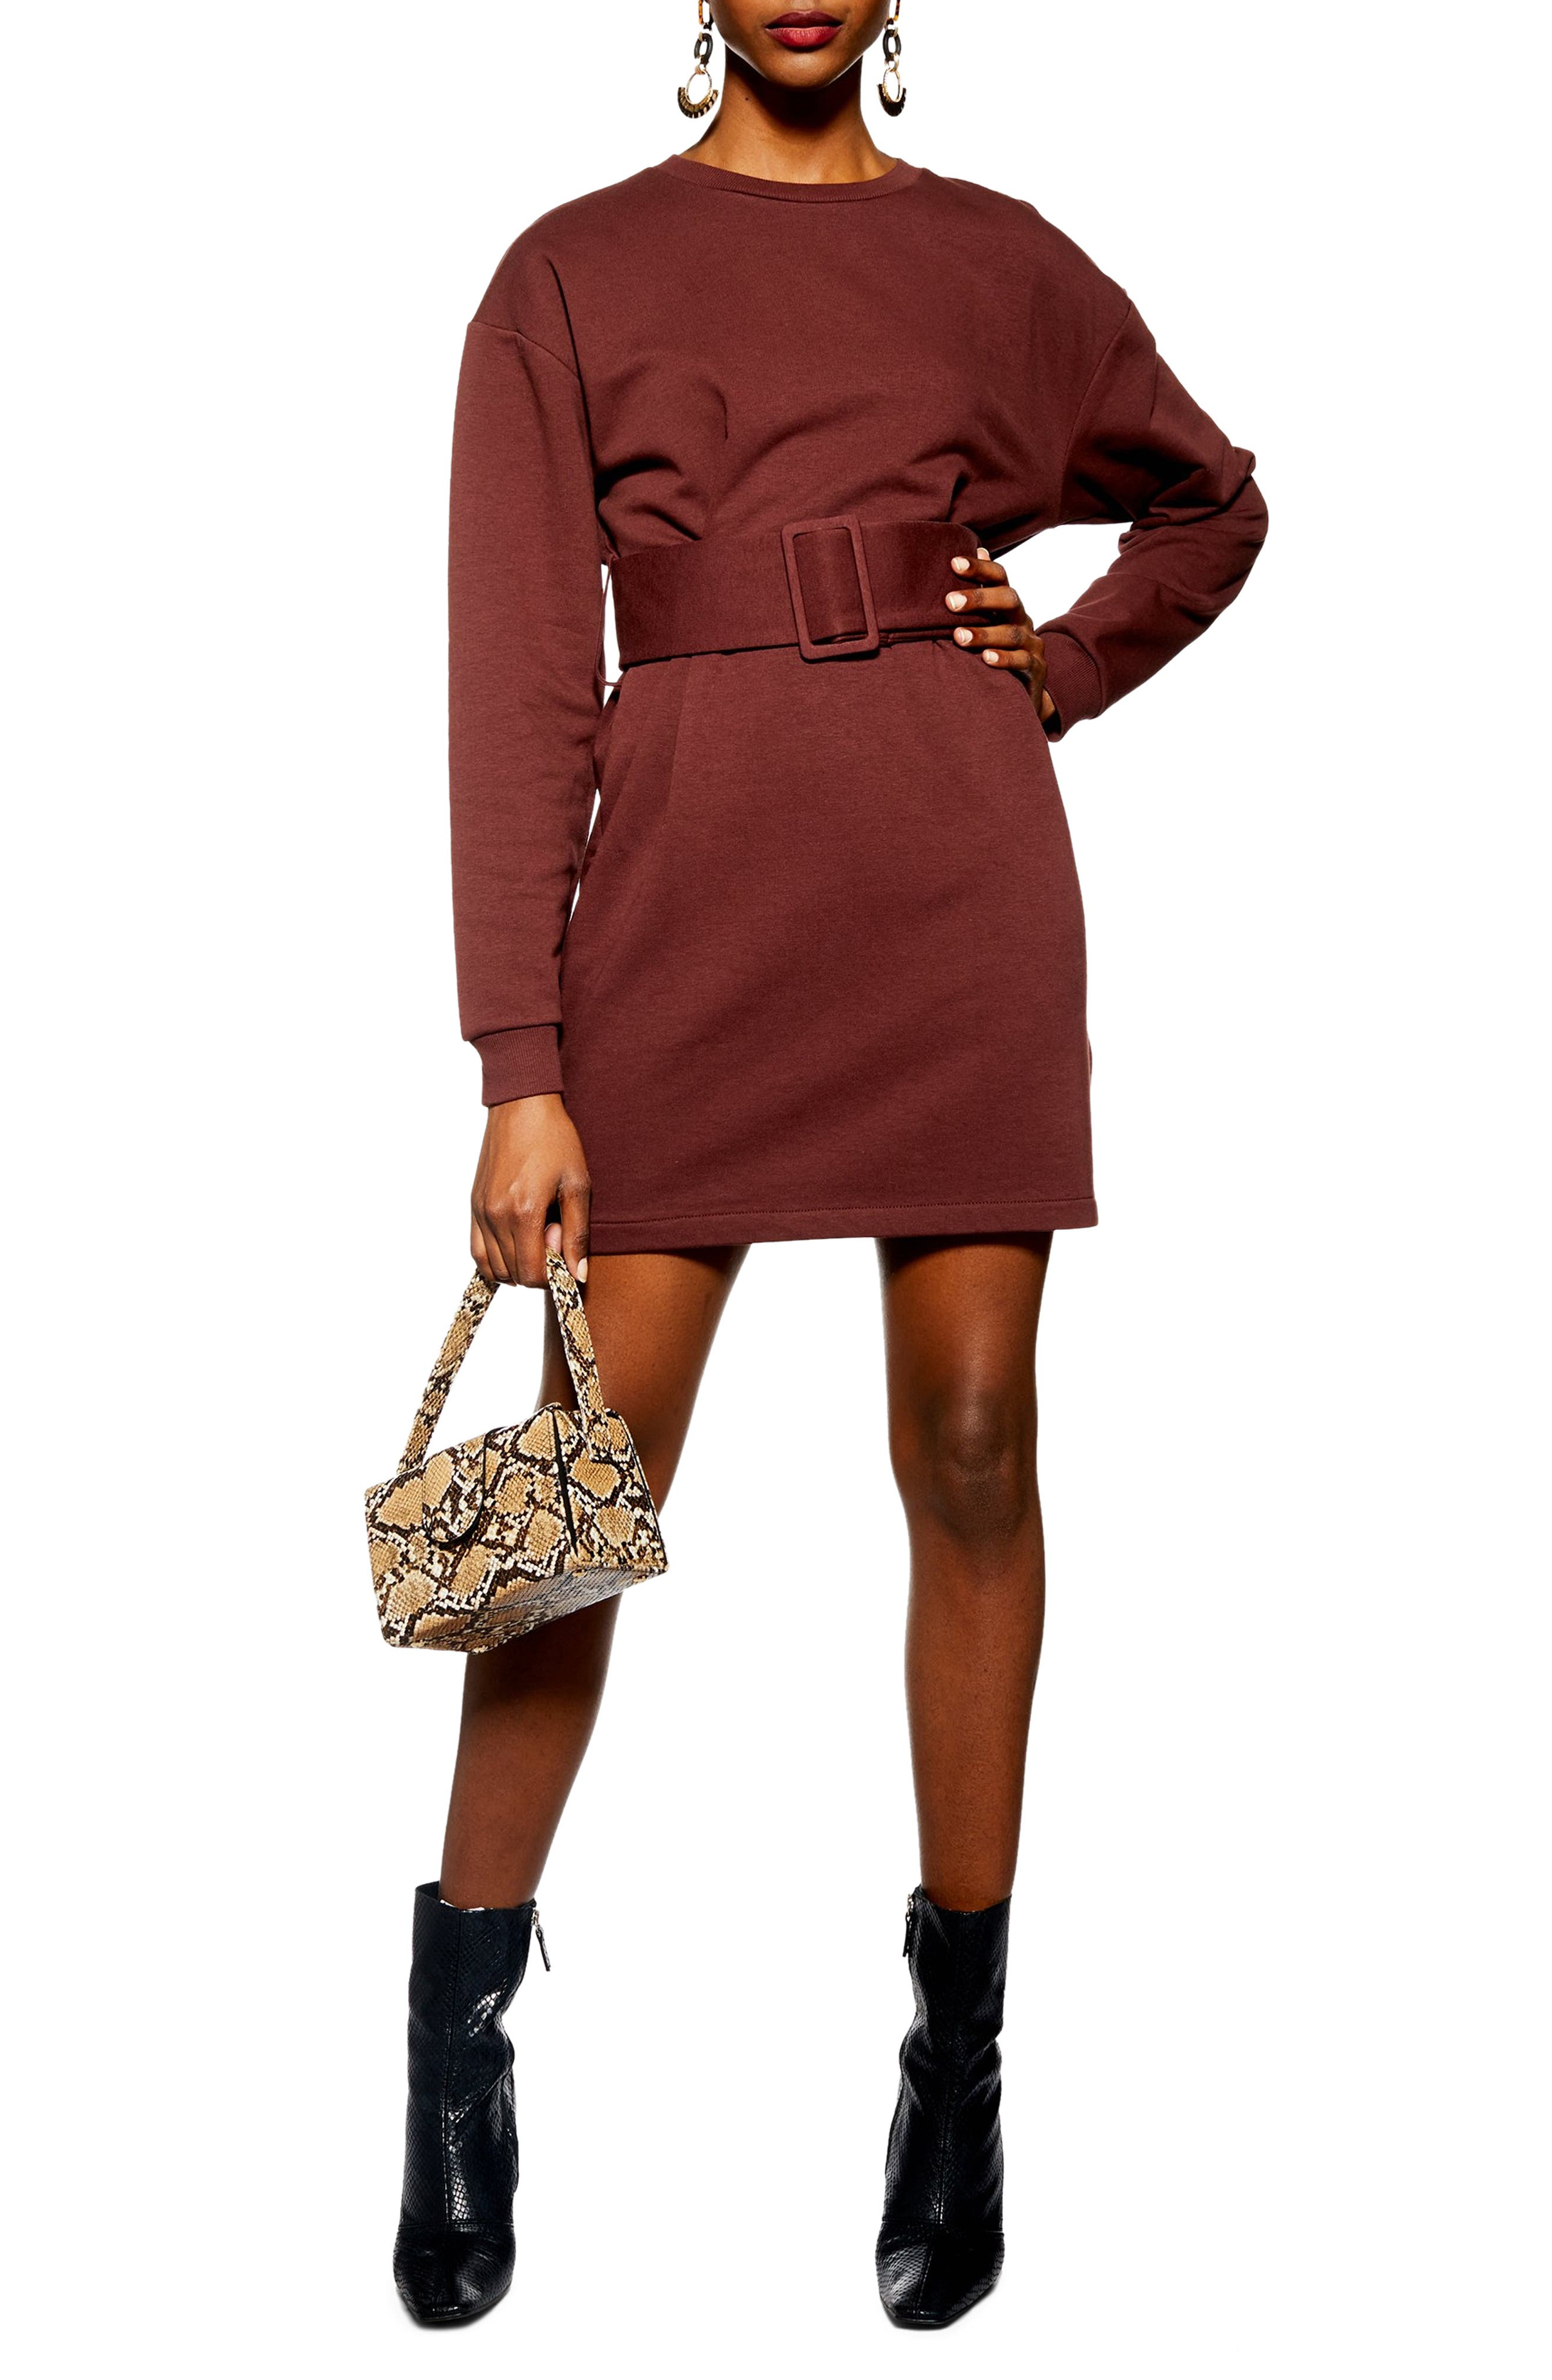 Topshop Belted Sweater Dress, US (fits like 2-4) - Brown